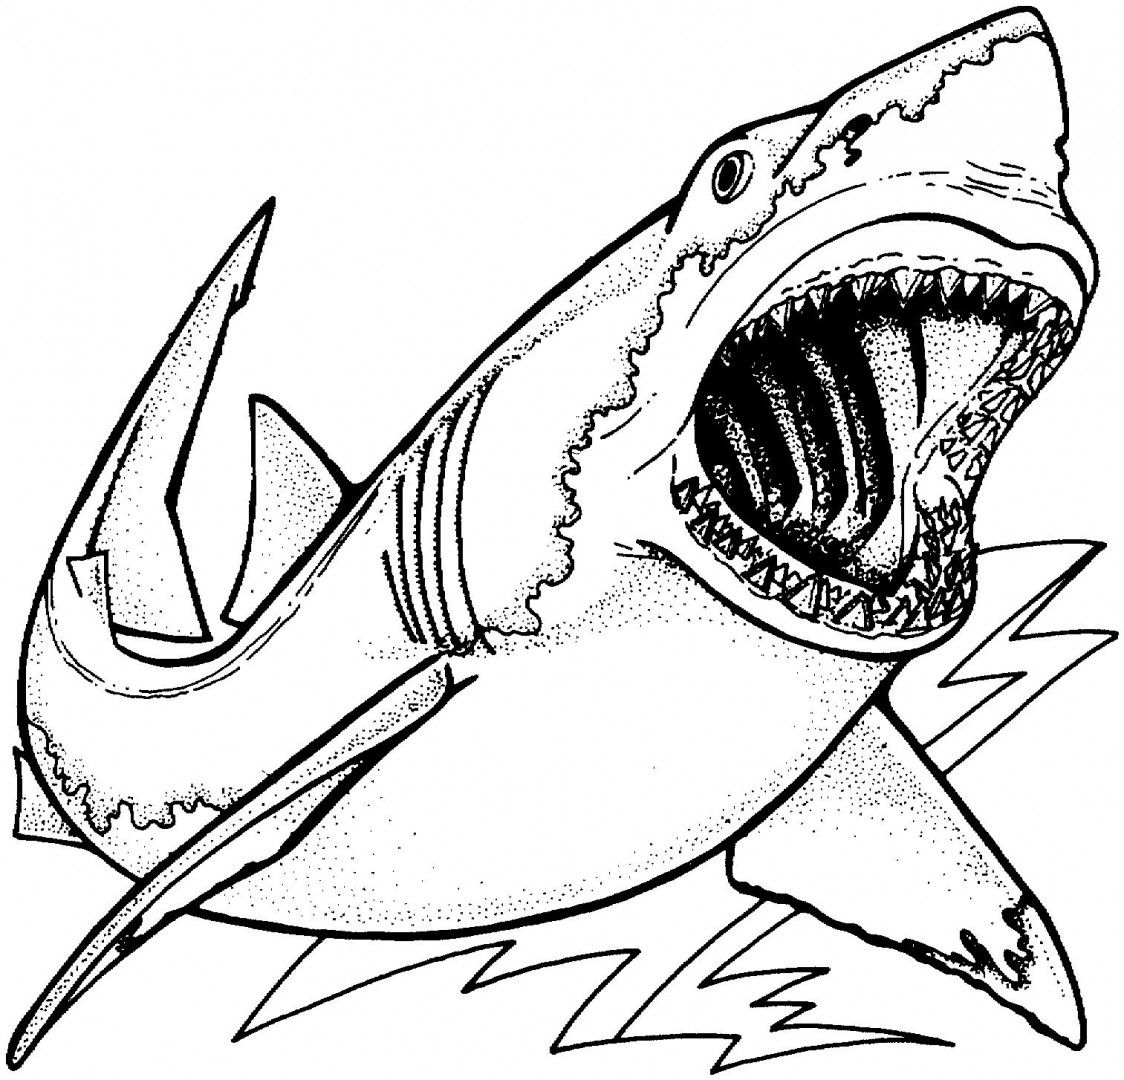 Colorings Co Sharks Coloring Pages For Boys Colorings